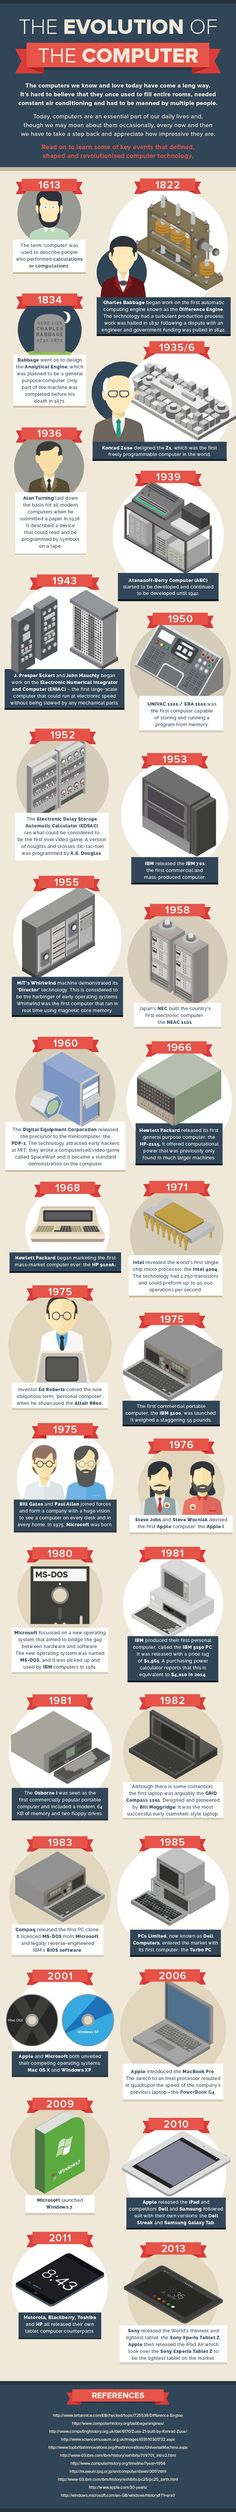 Infographic: The evolution of the computer - Virgin.com